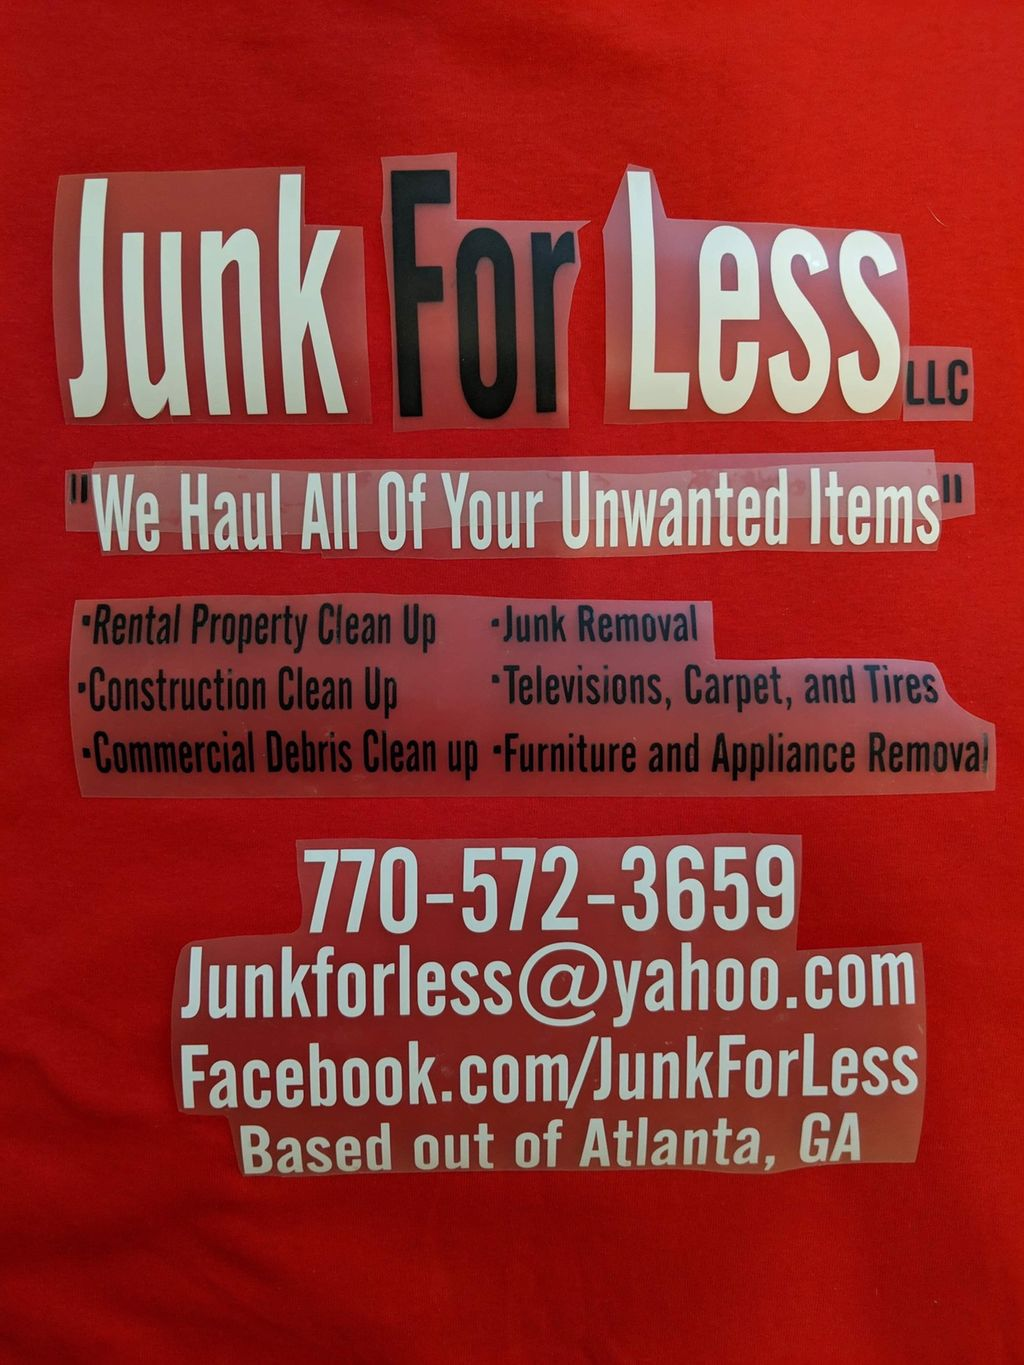 ♻️ Junk for less ♻️